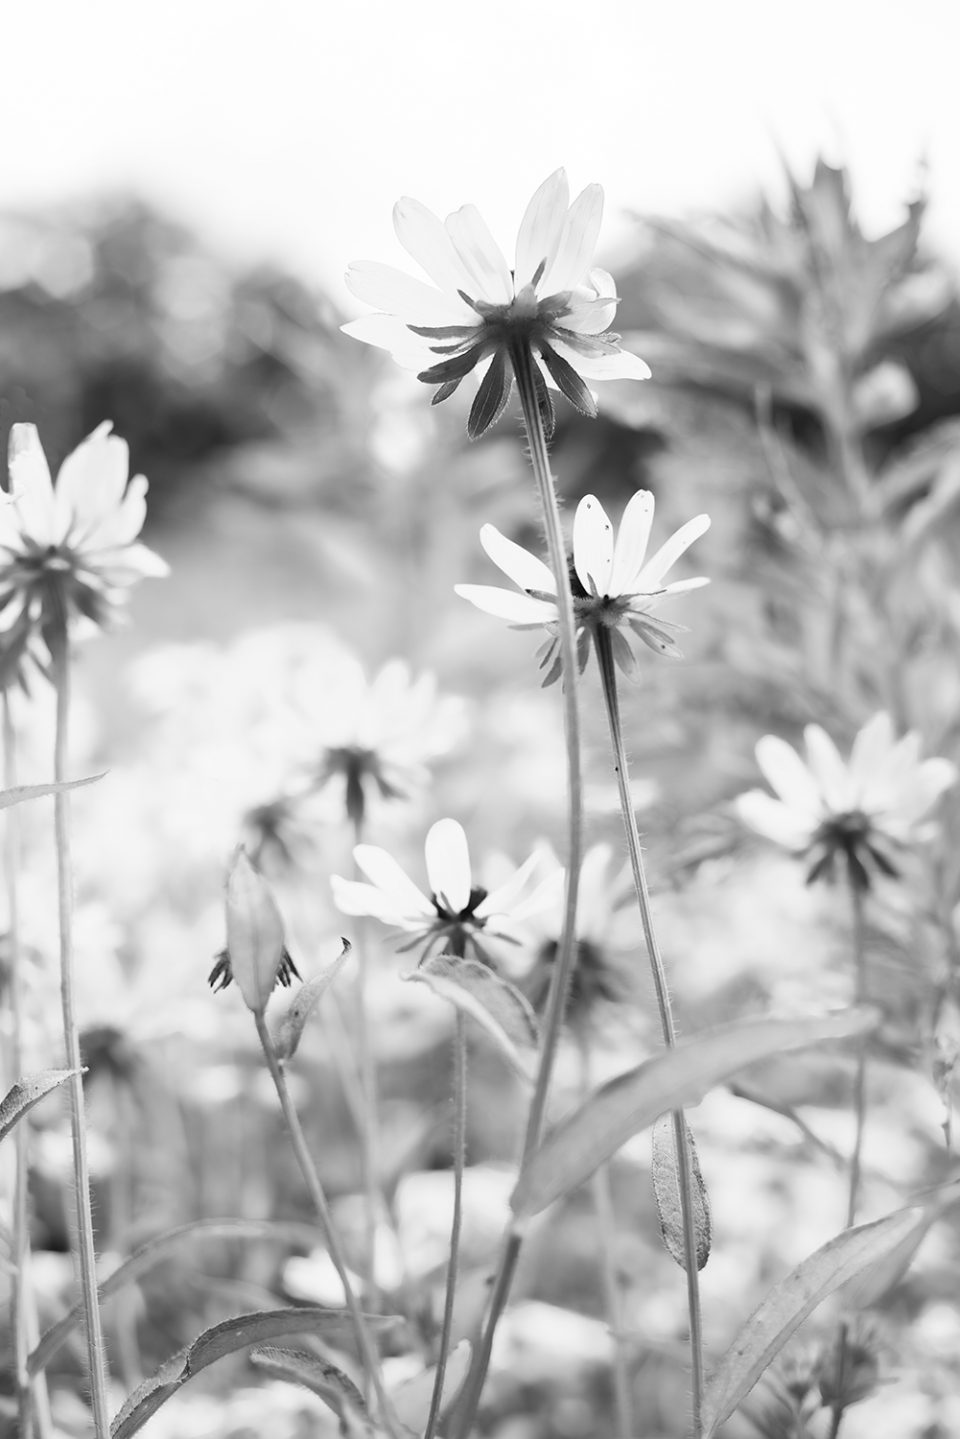 A black and white photograph of the wildflowers found above the hiking trail in the hot summer sun.